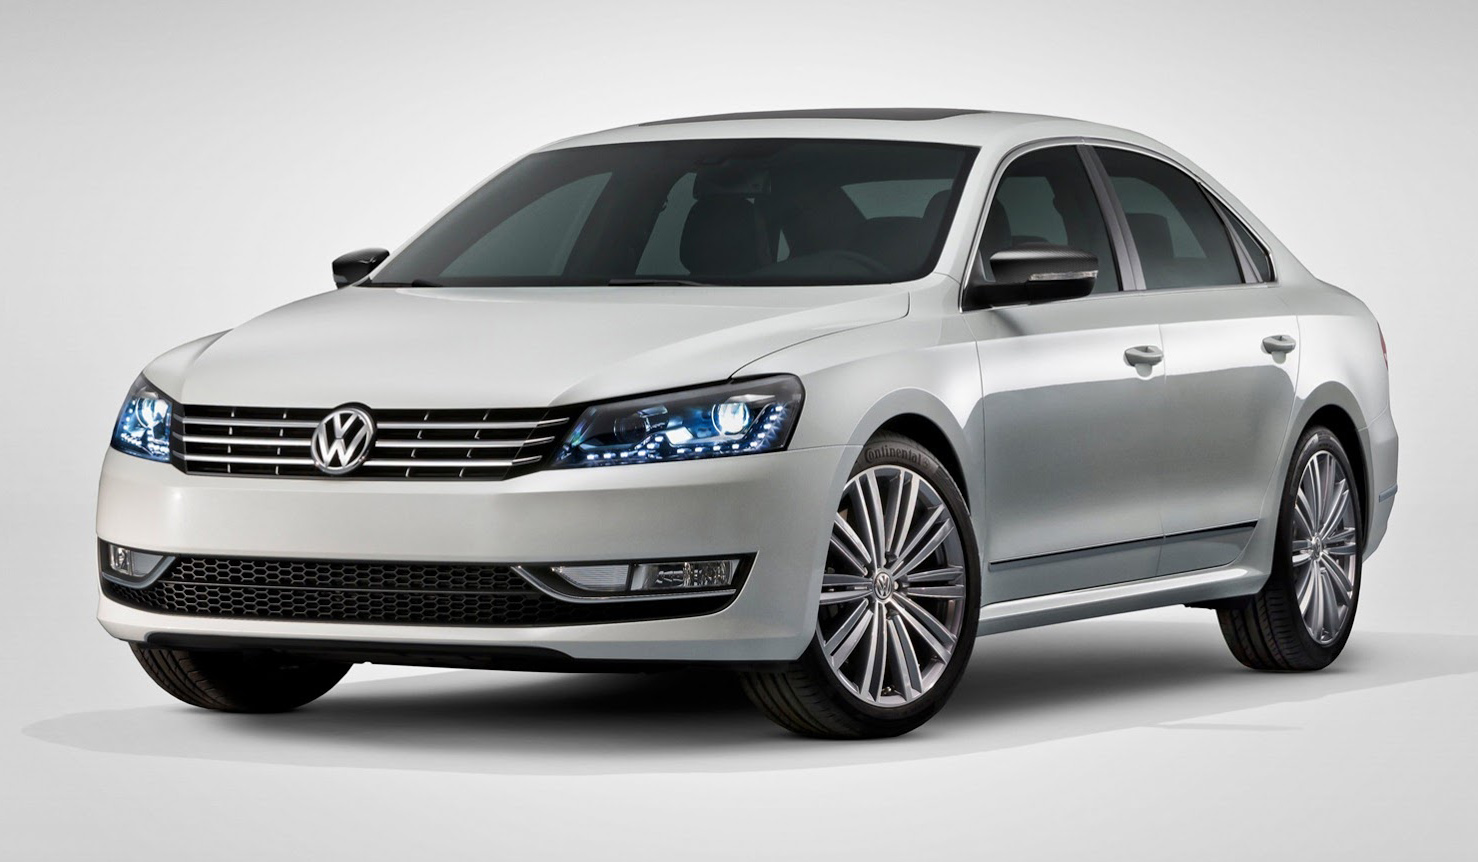 2017 Volkswagen Passat R36 photo - 1